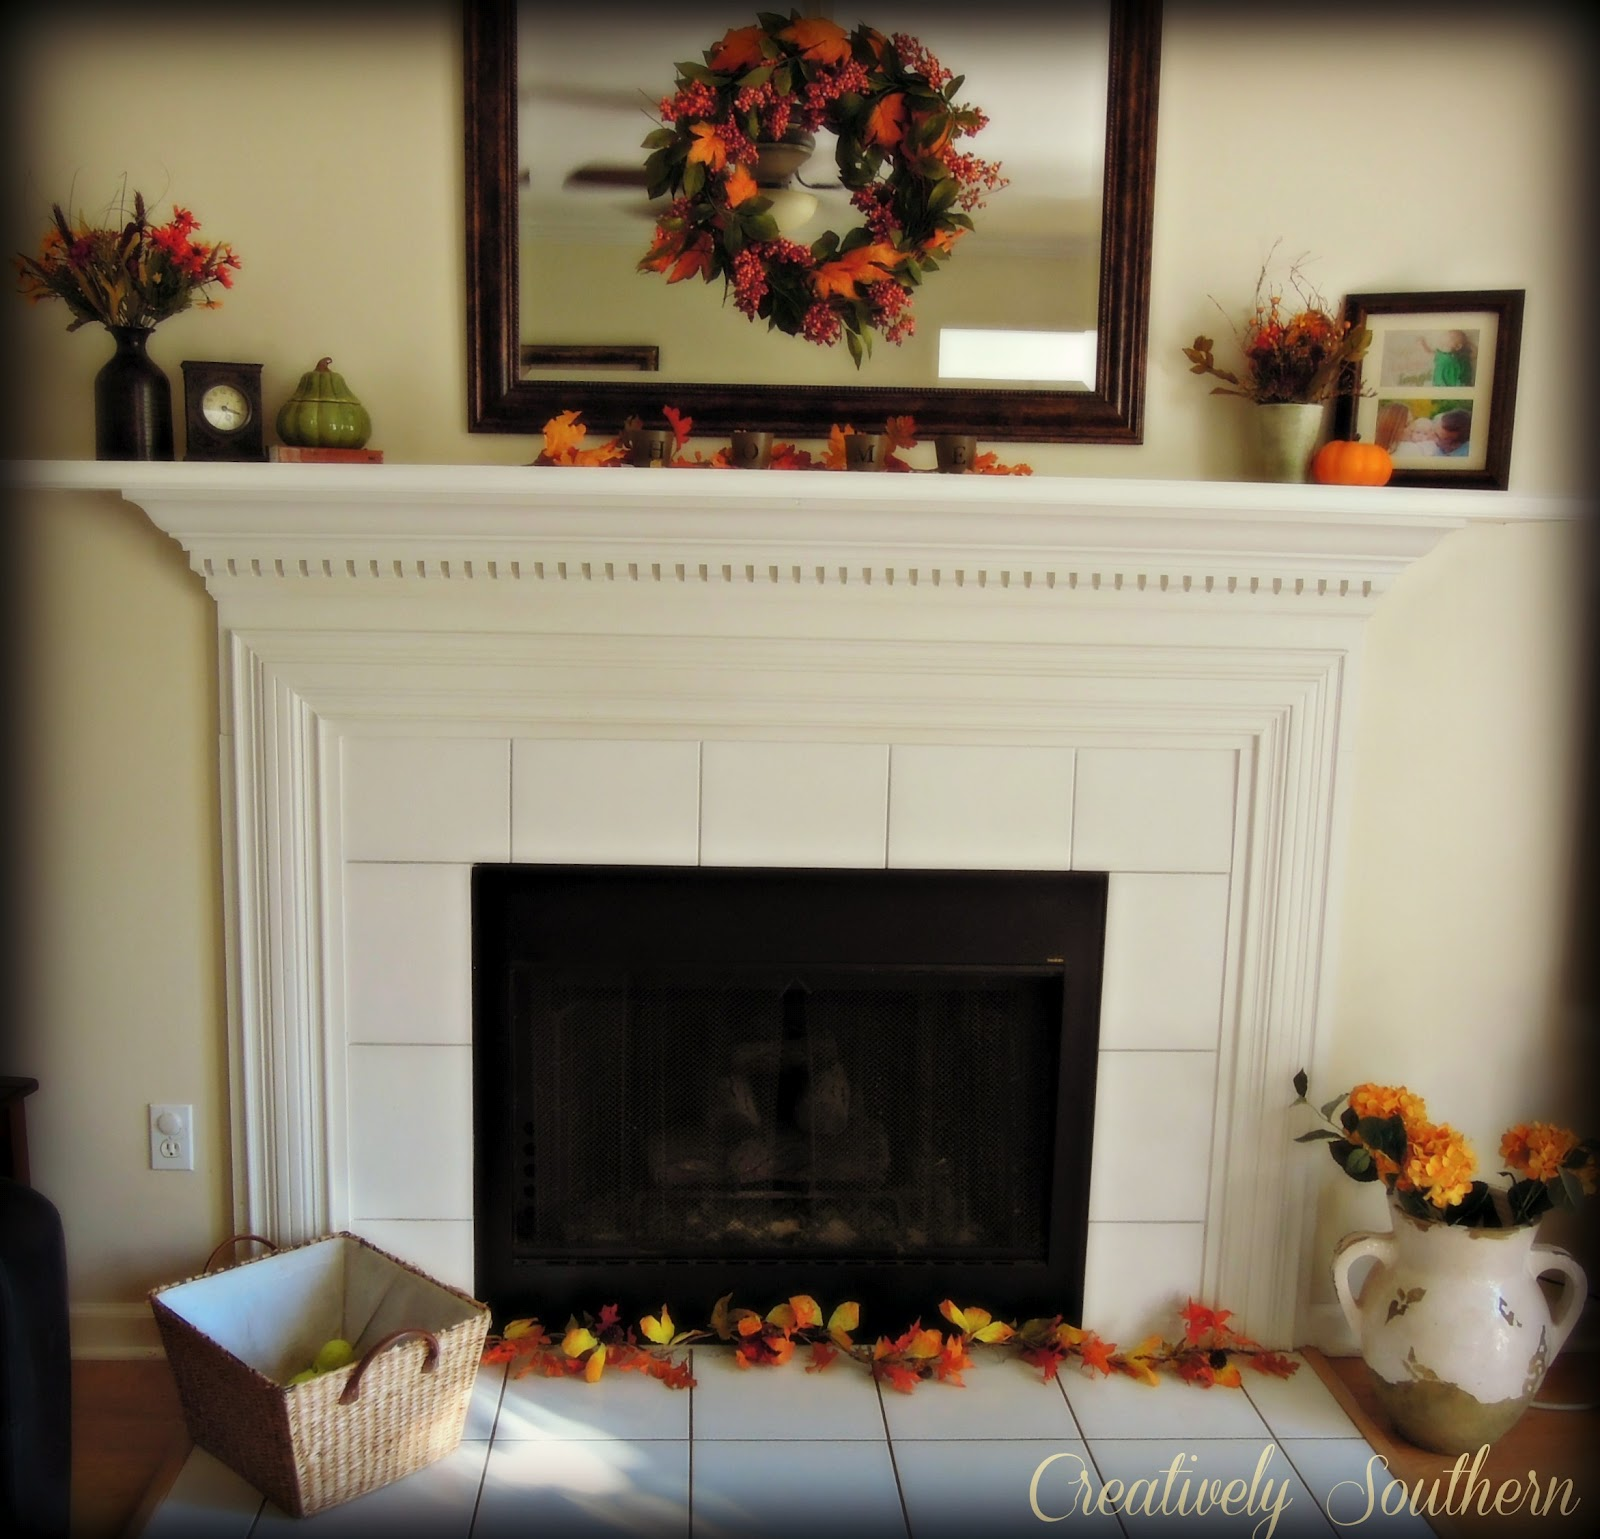 Fall Fireplace Mantel Decorating Ideas: Fall Mantel Decorating